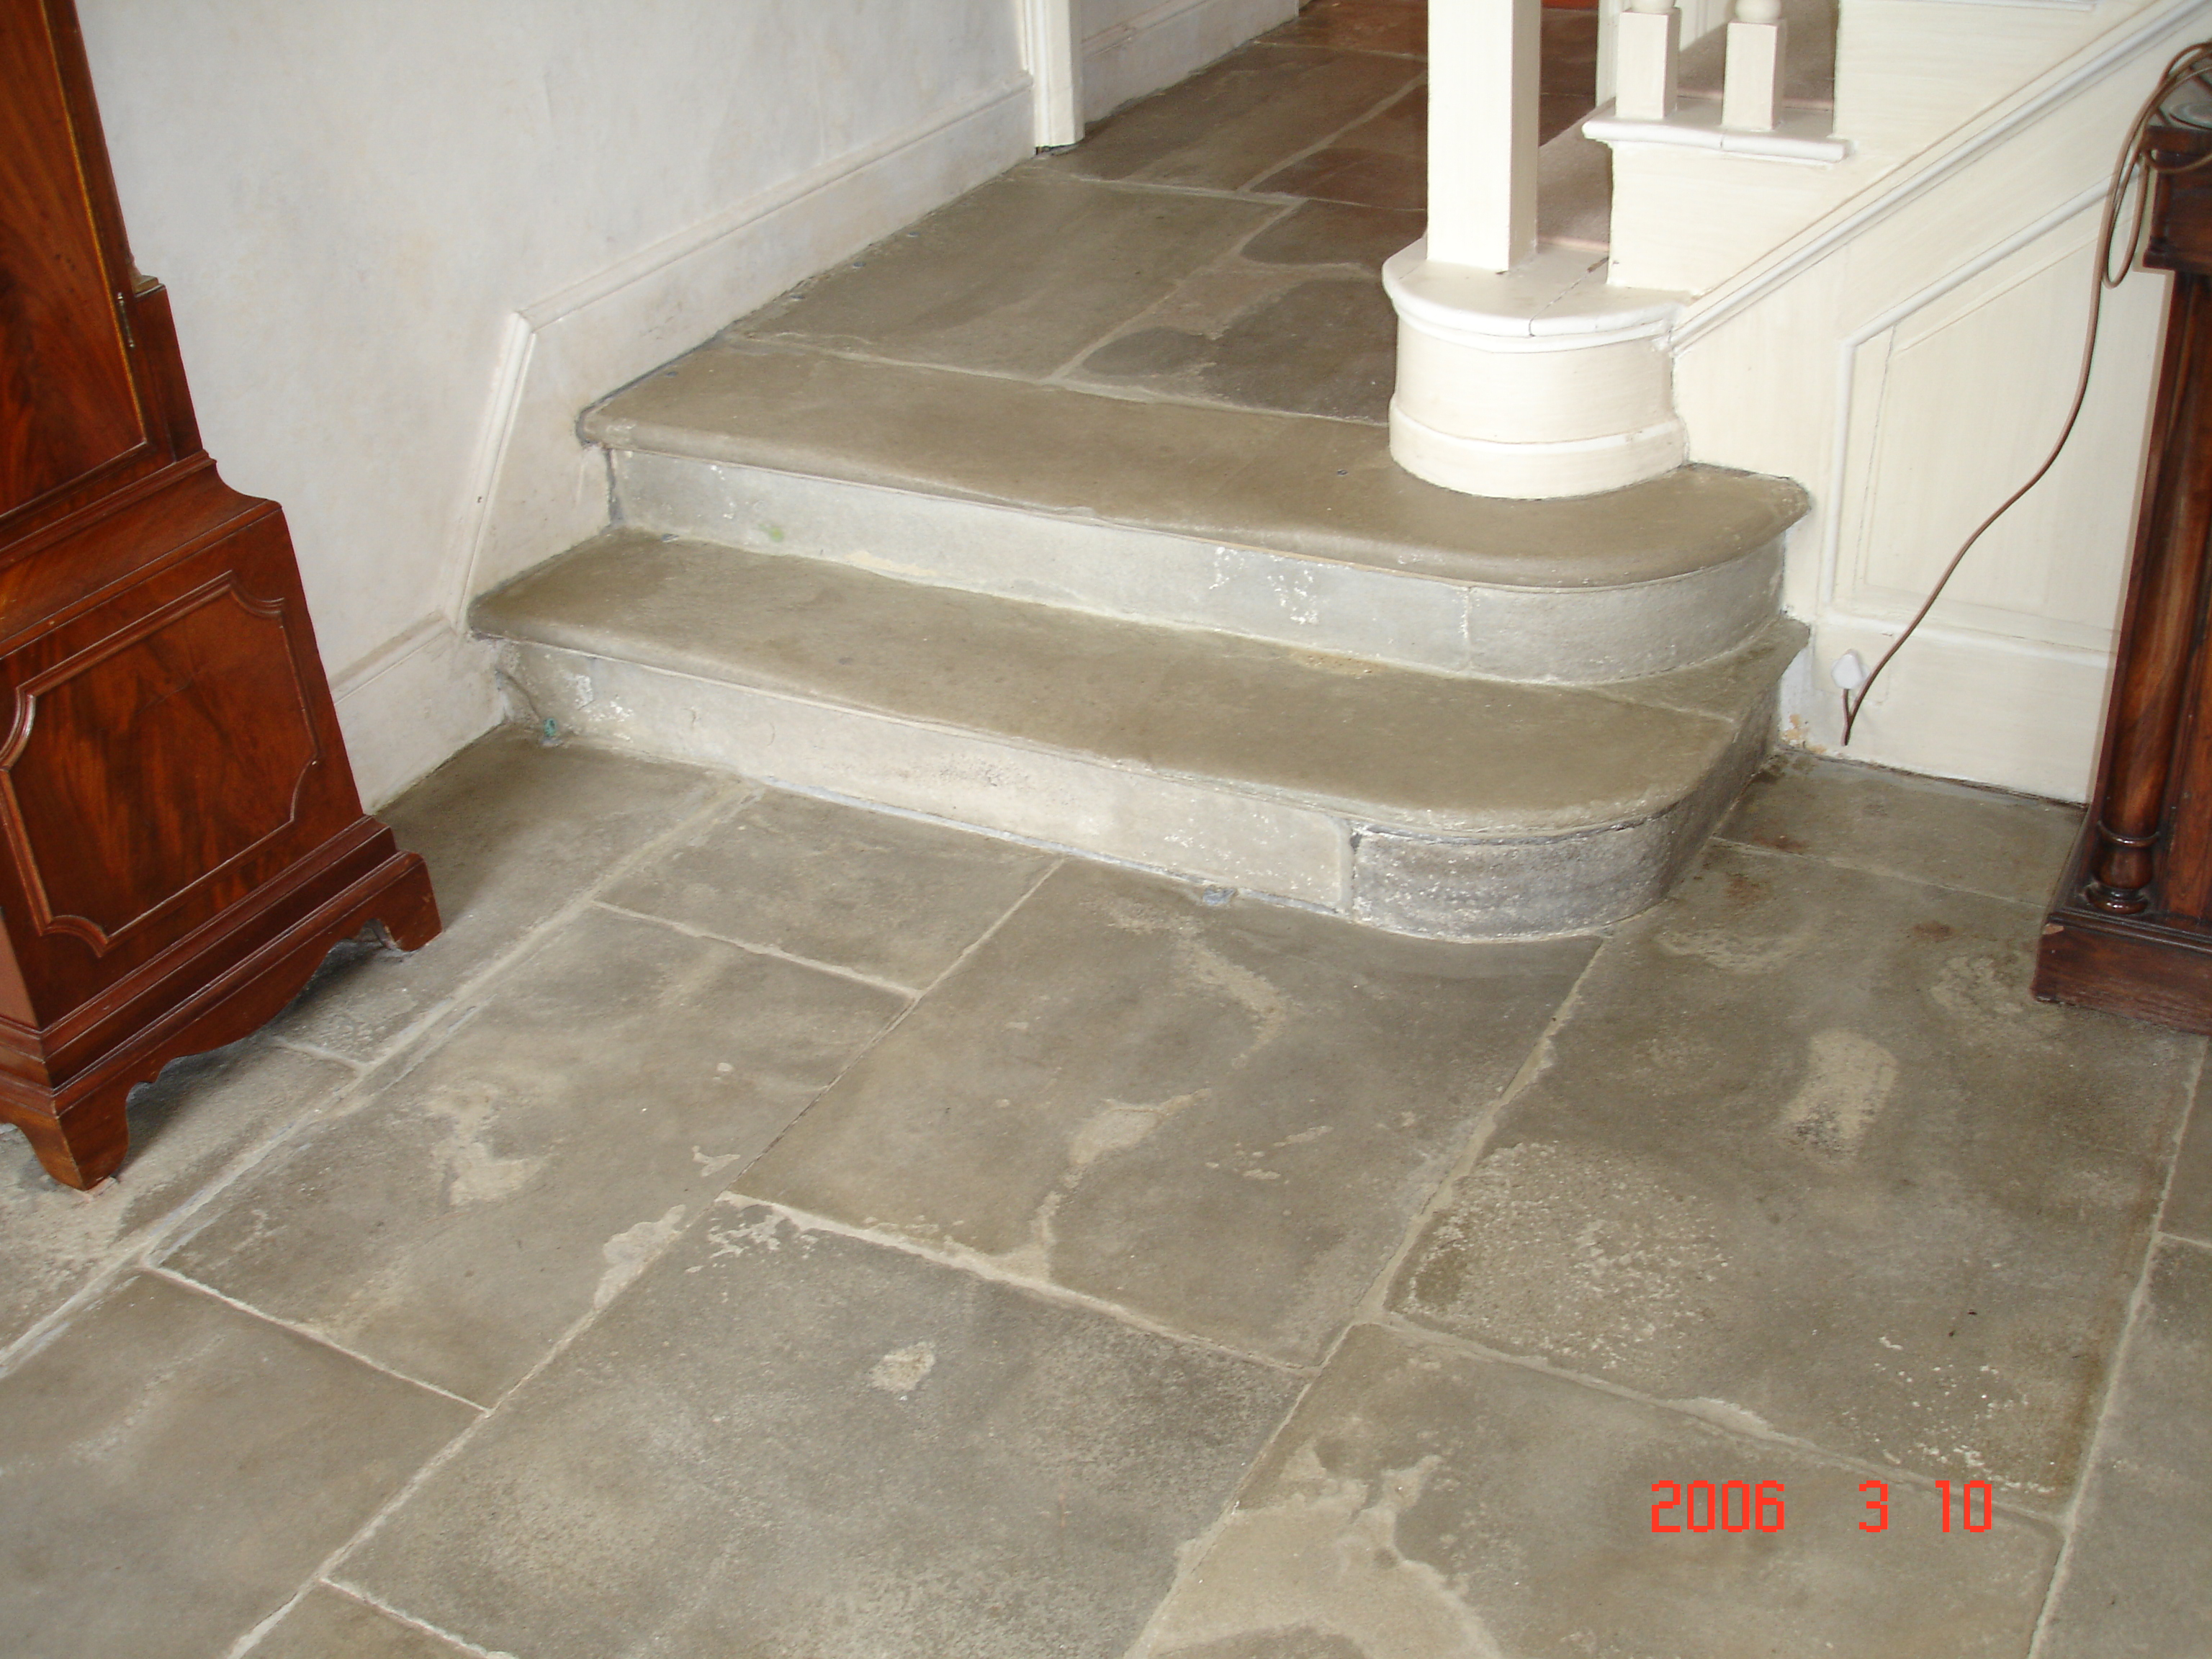 Restorations rustica tiles the complete quality tile service click to find out more about this cotswold stone restoration floor restorations dailygadgetfo Images